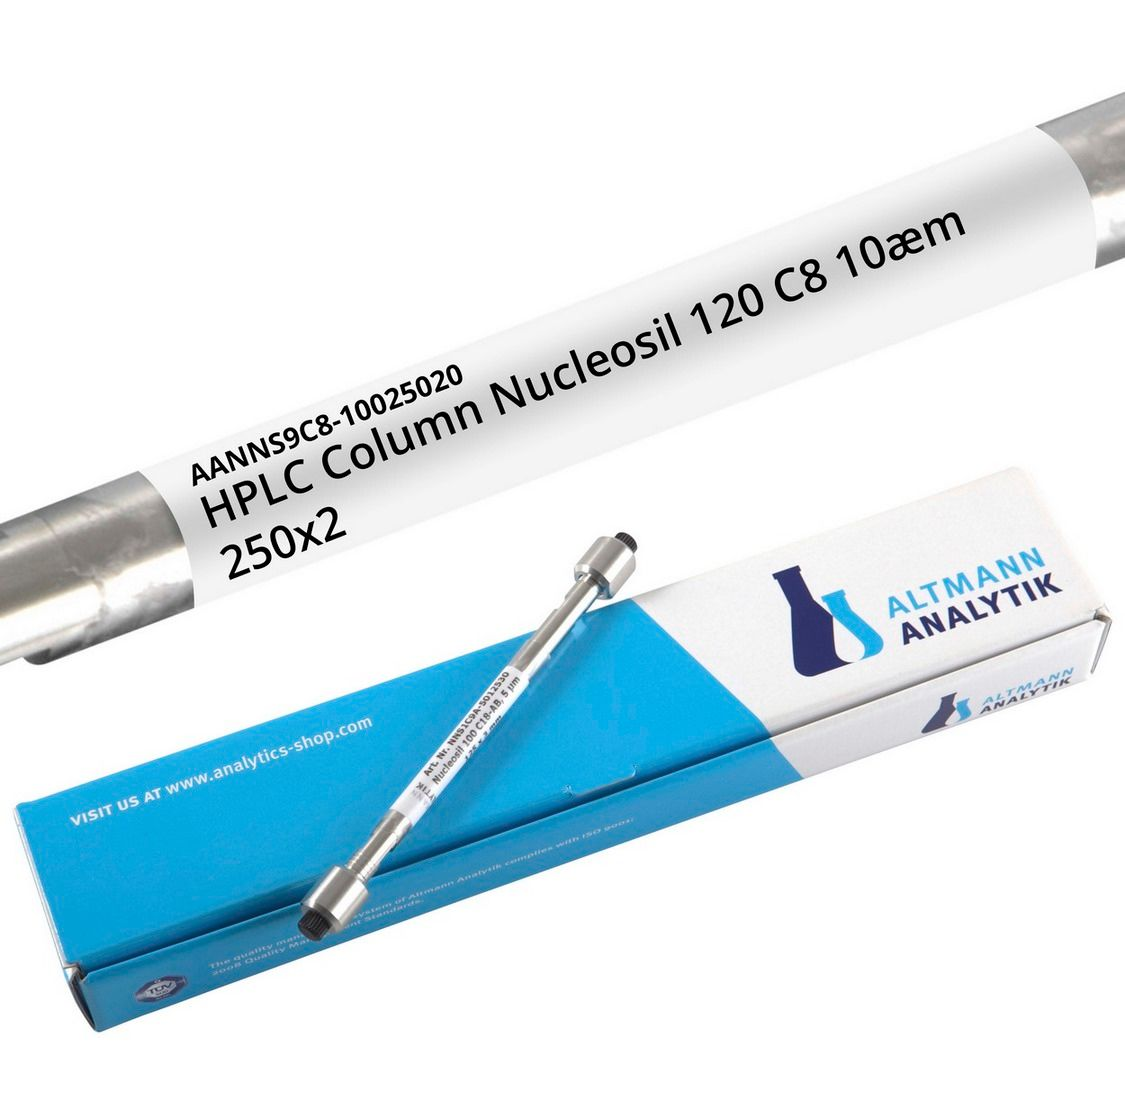 HPLC Column Nucleosil 120 C8 10µm 250x2 mm, 120A